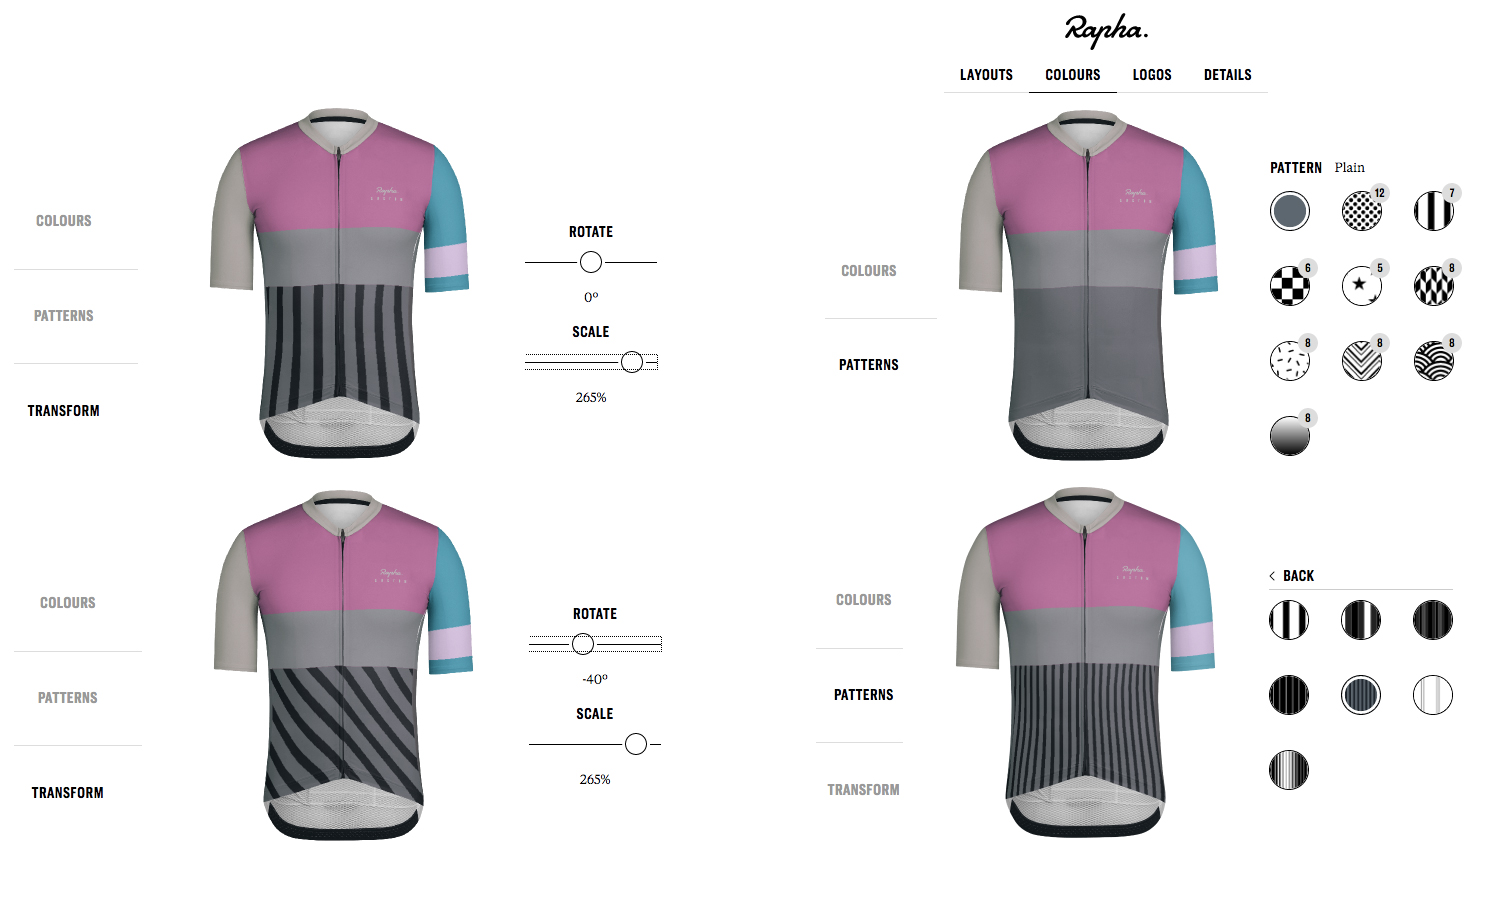 Rapha Custom Pro team mid jersey patterns